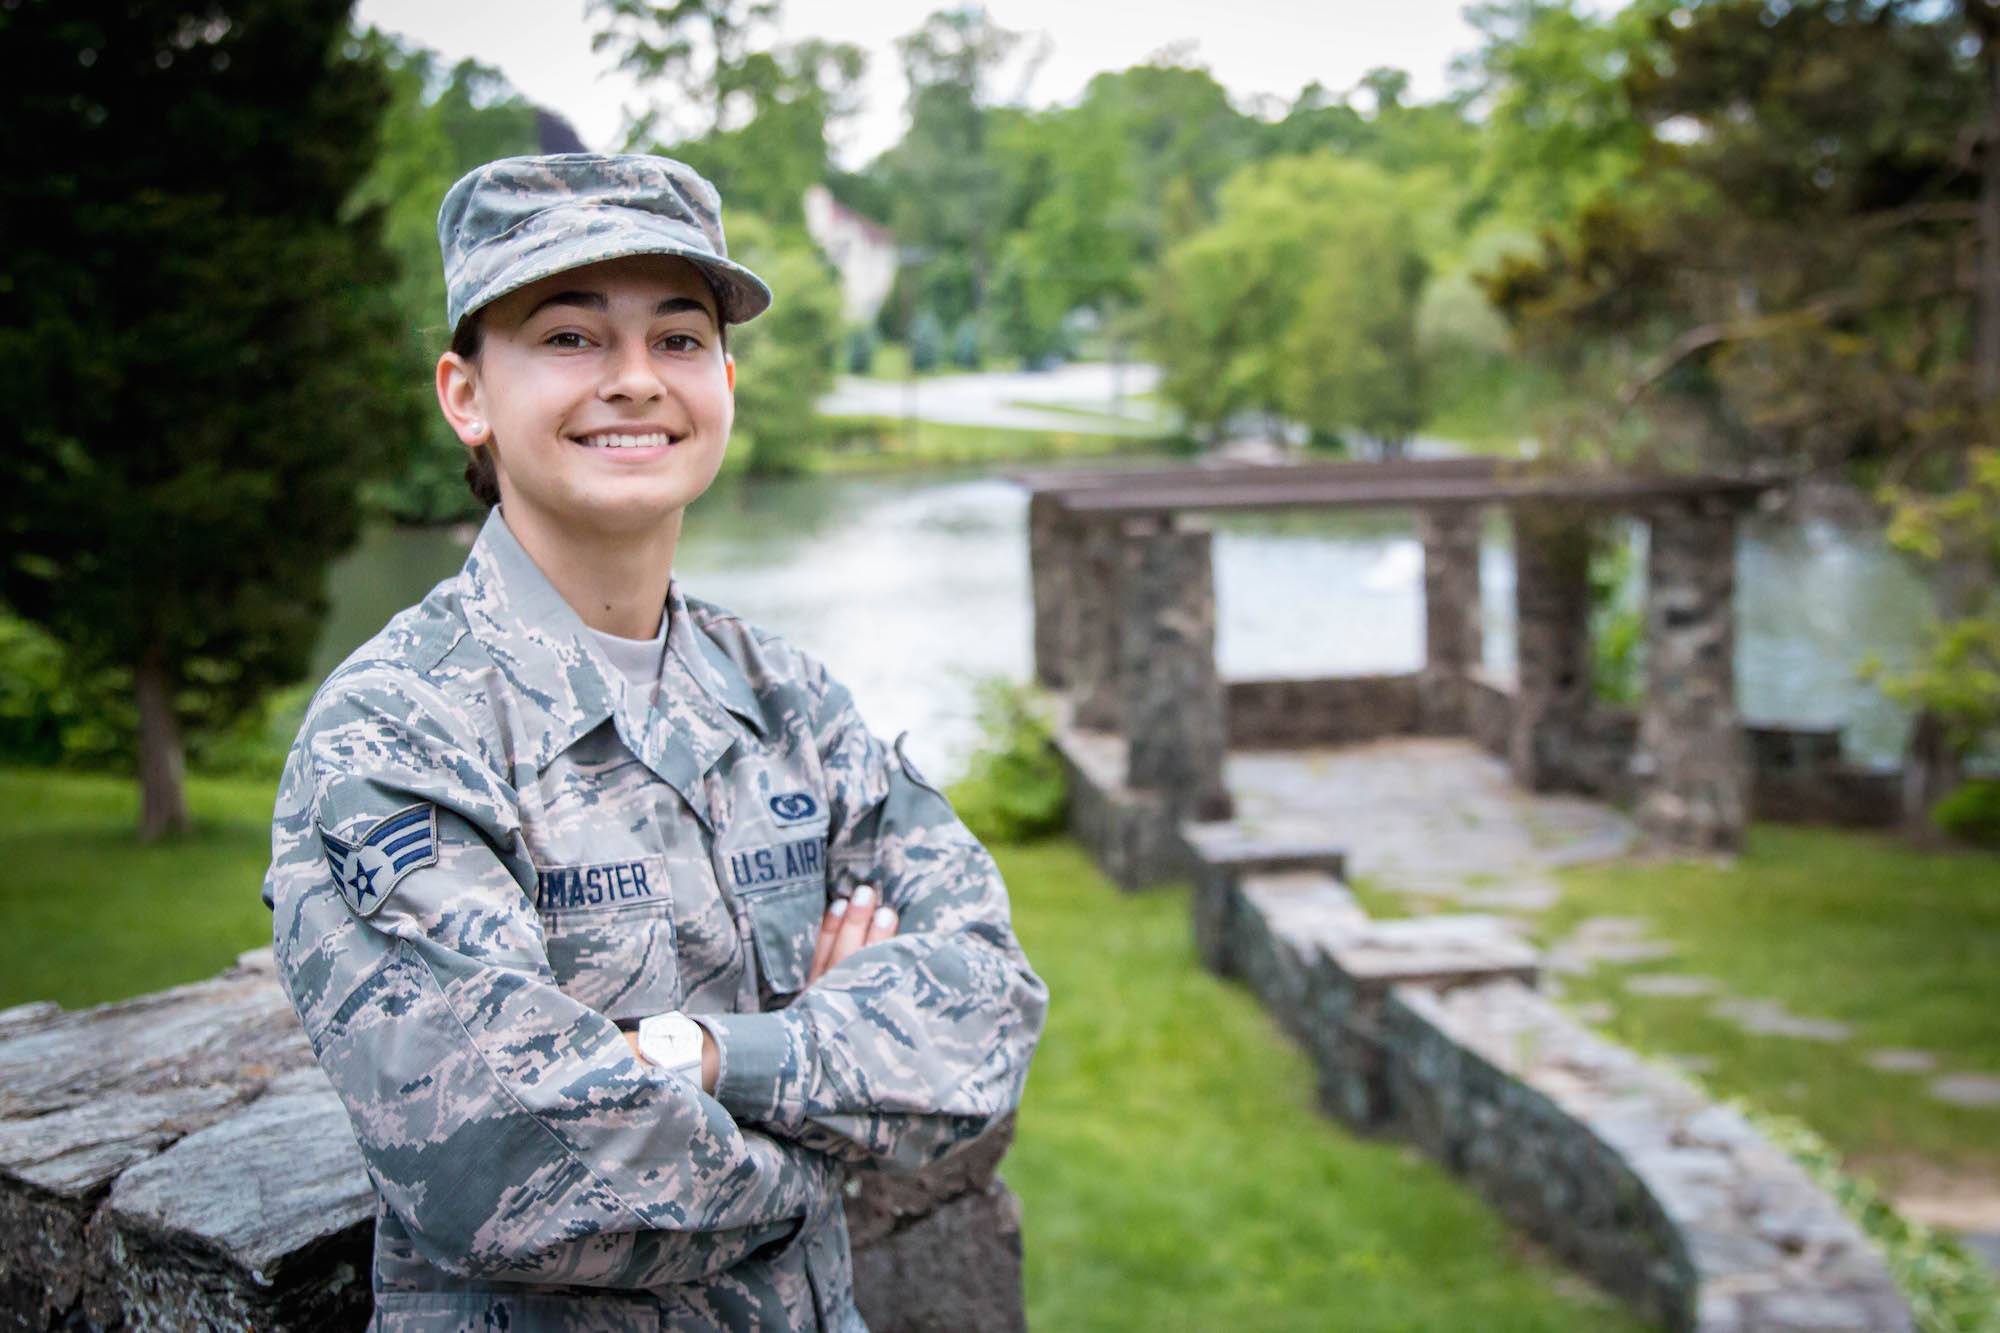 Learn more about the Center for Military & Veteran Students